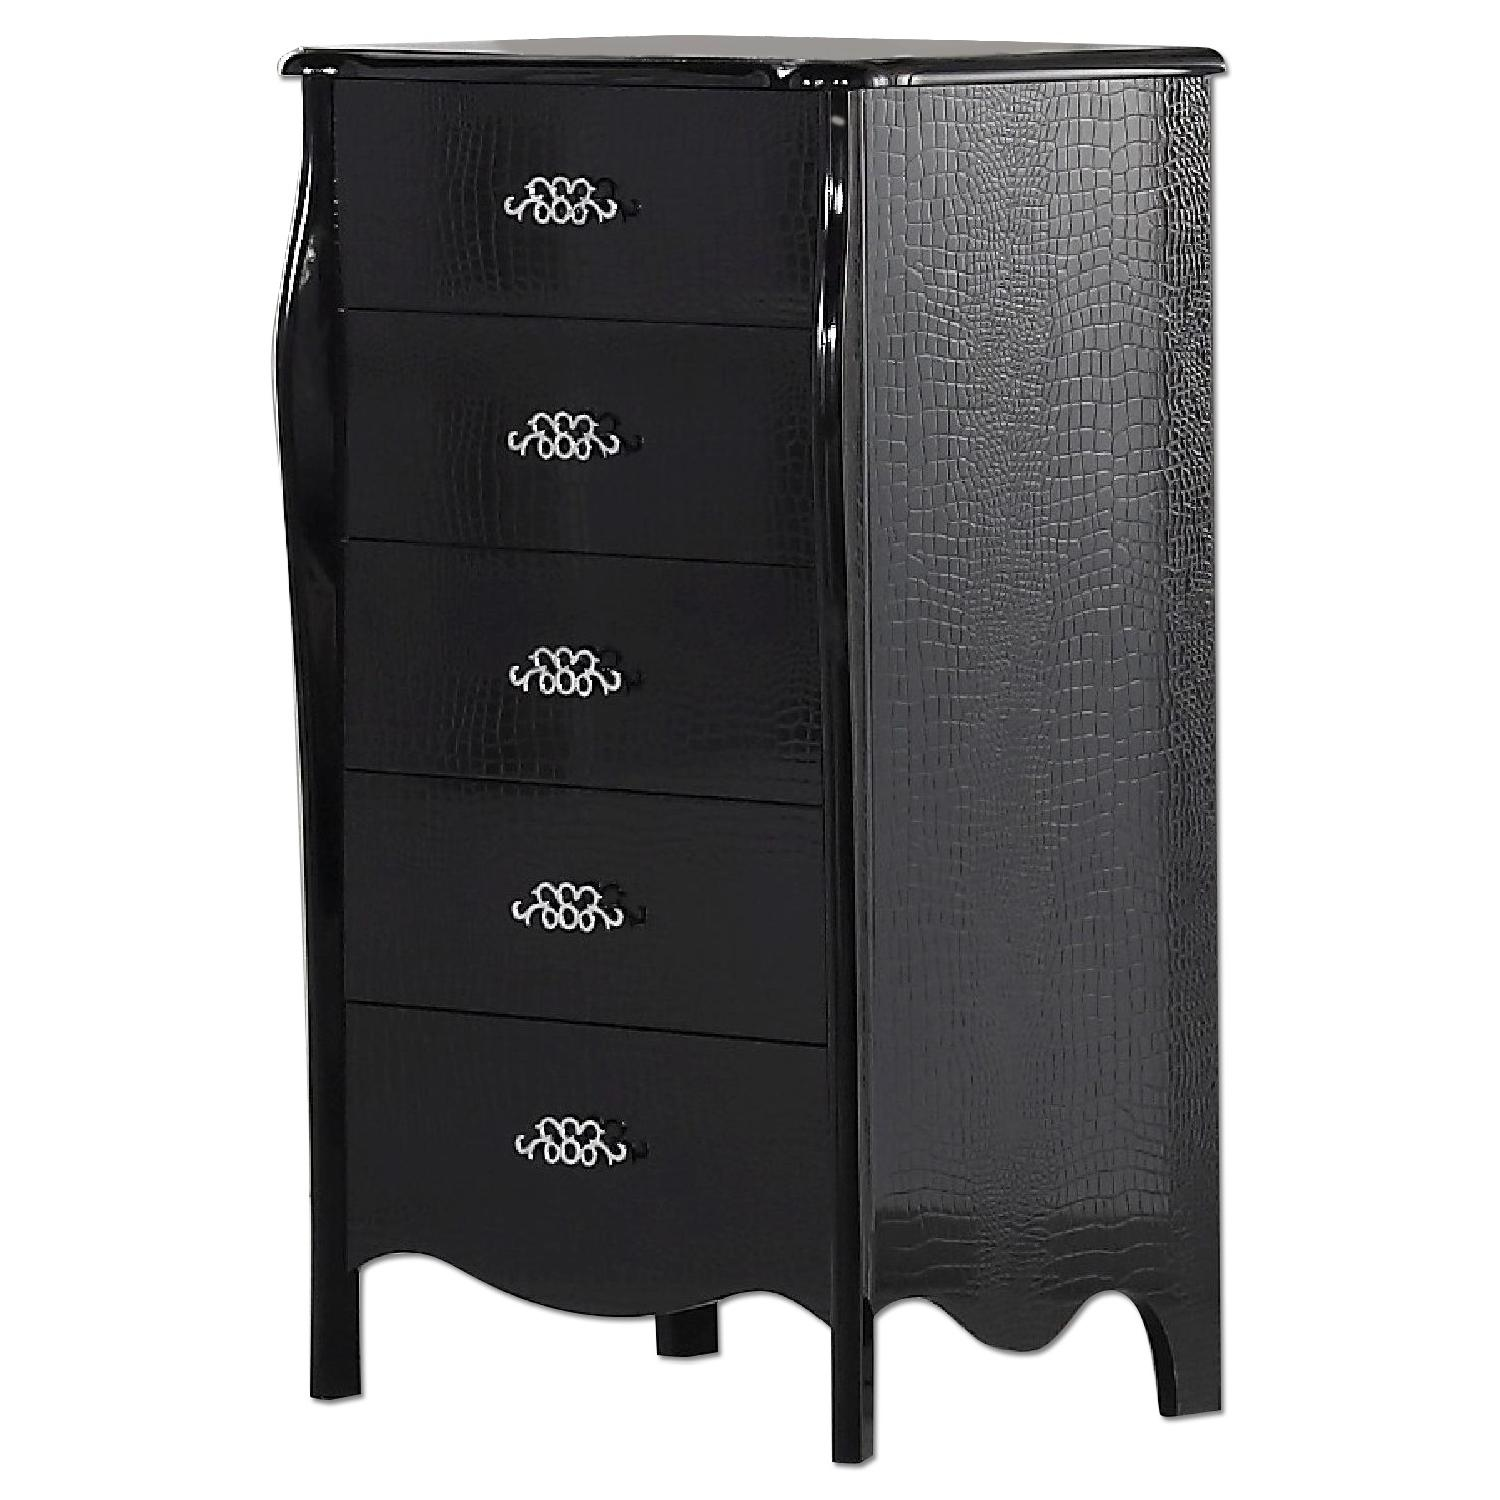 Neo-Classical Style 5-Drawer Chest in High Gloss Black Finish w/ Crocodile Patterns